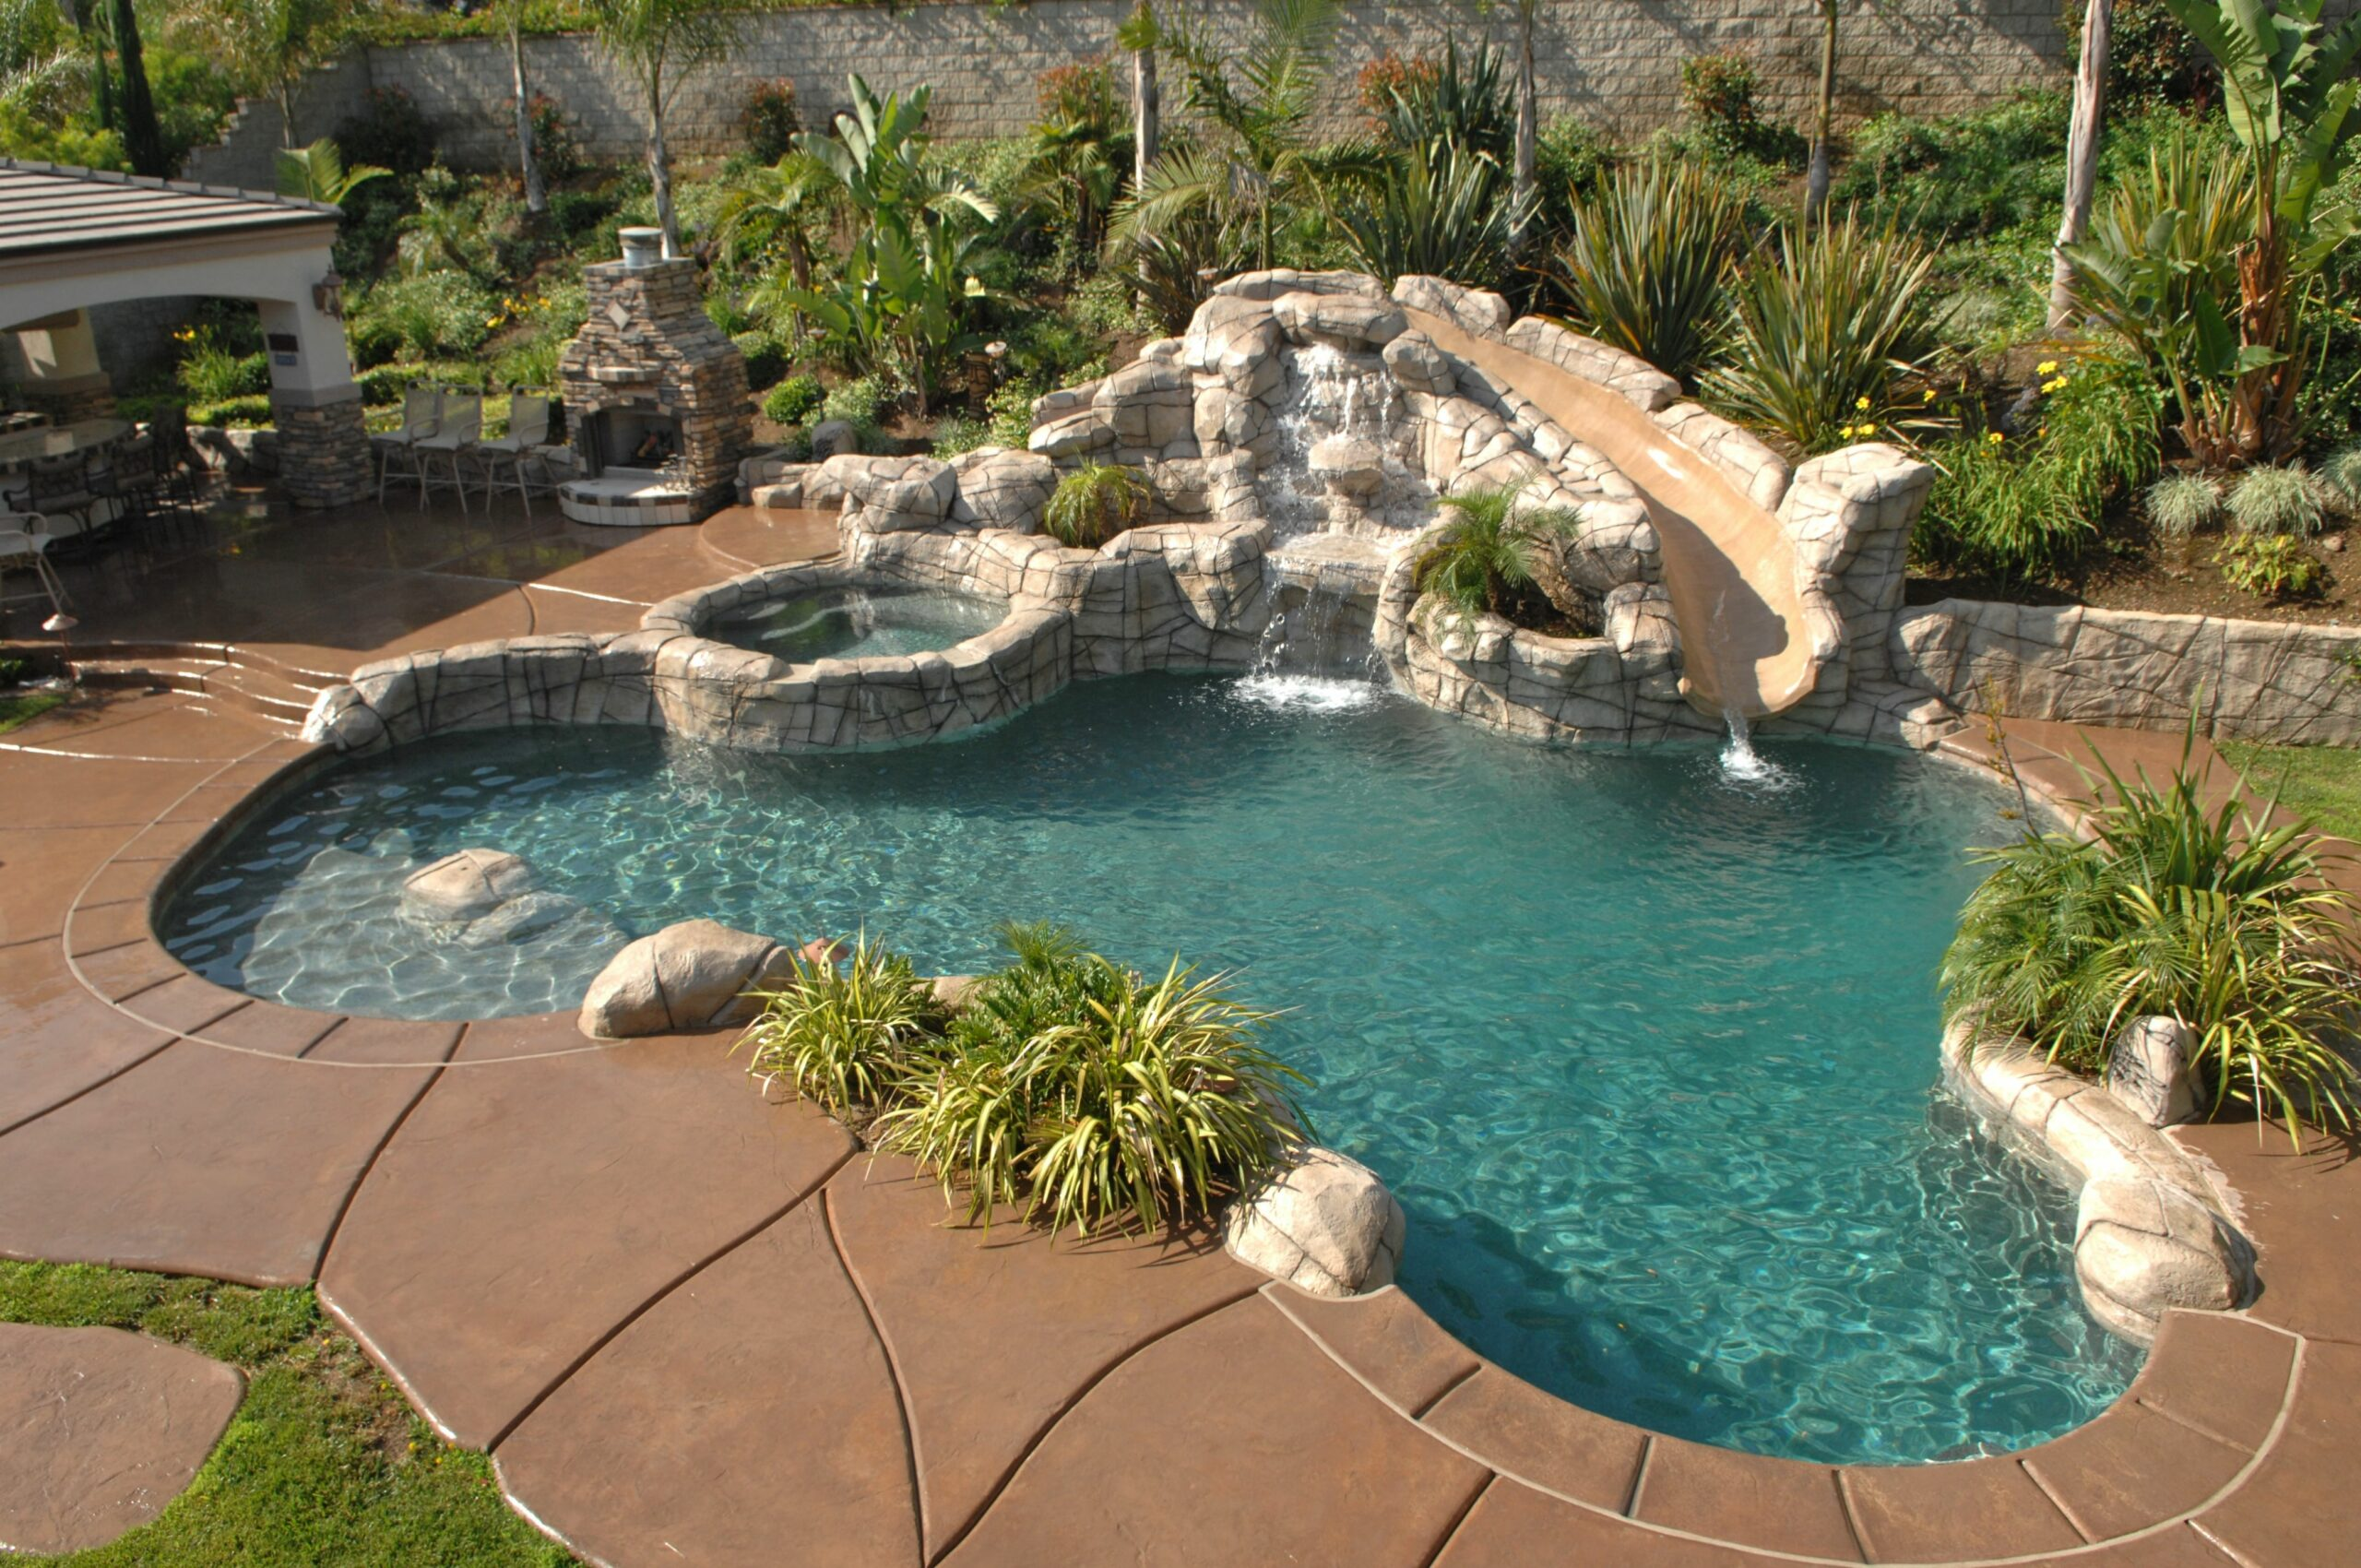 Pool Designs With Rock Slides Gorgeous Swimming Pools Natural Home ..